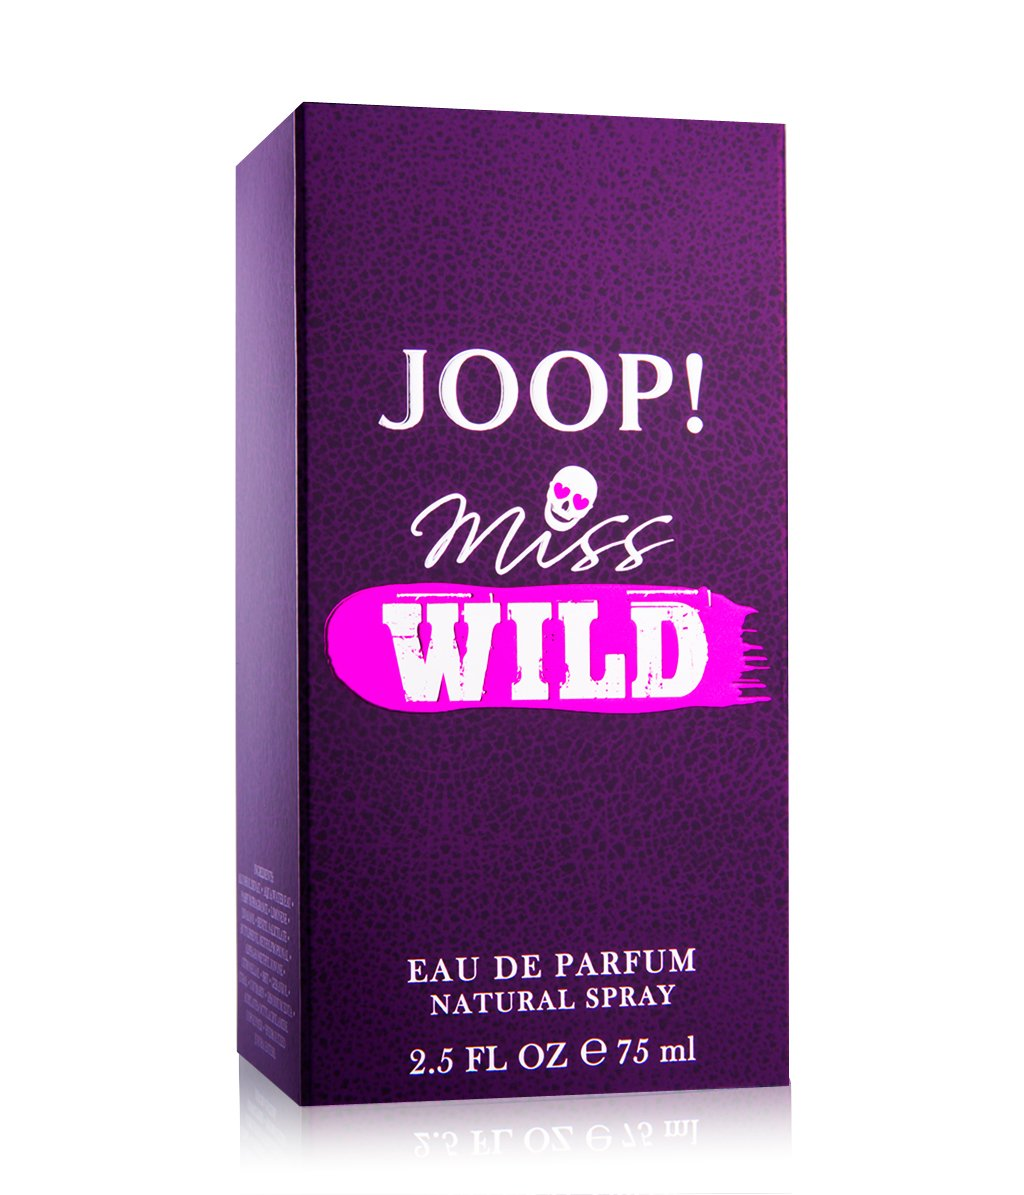 joop miss wild eau de parfum online bestellen flaconi. Black Bedroom Furniture Sets. Home Design Ideas